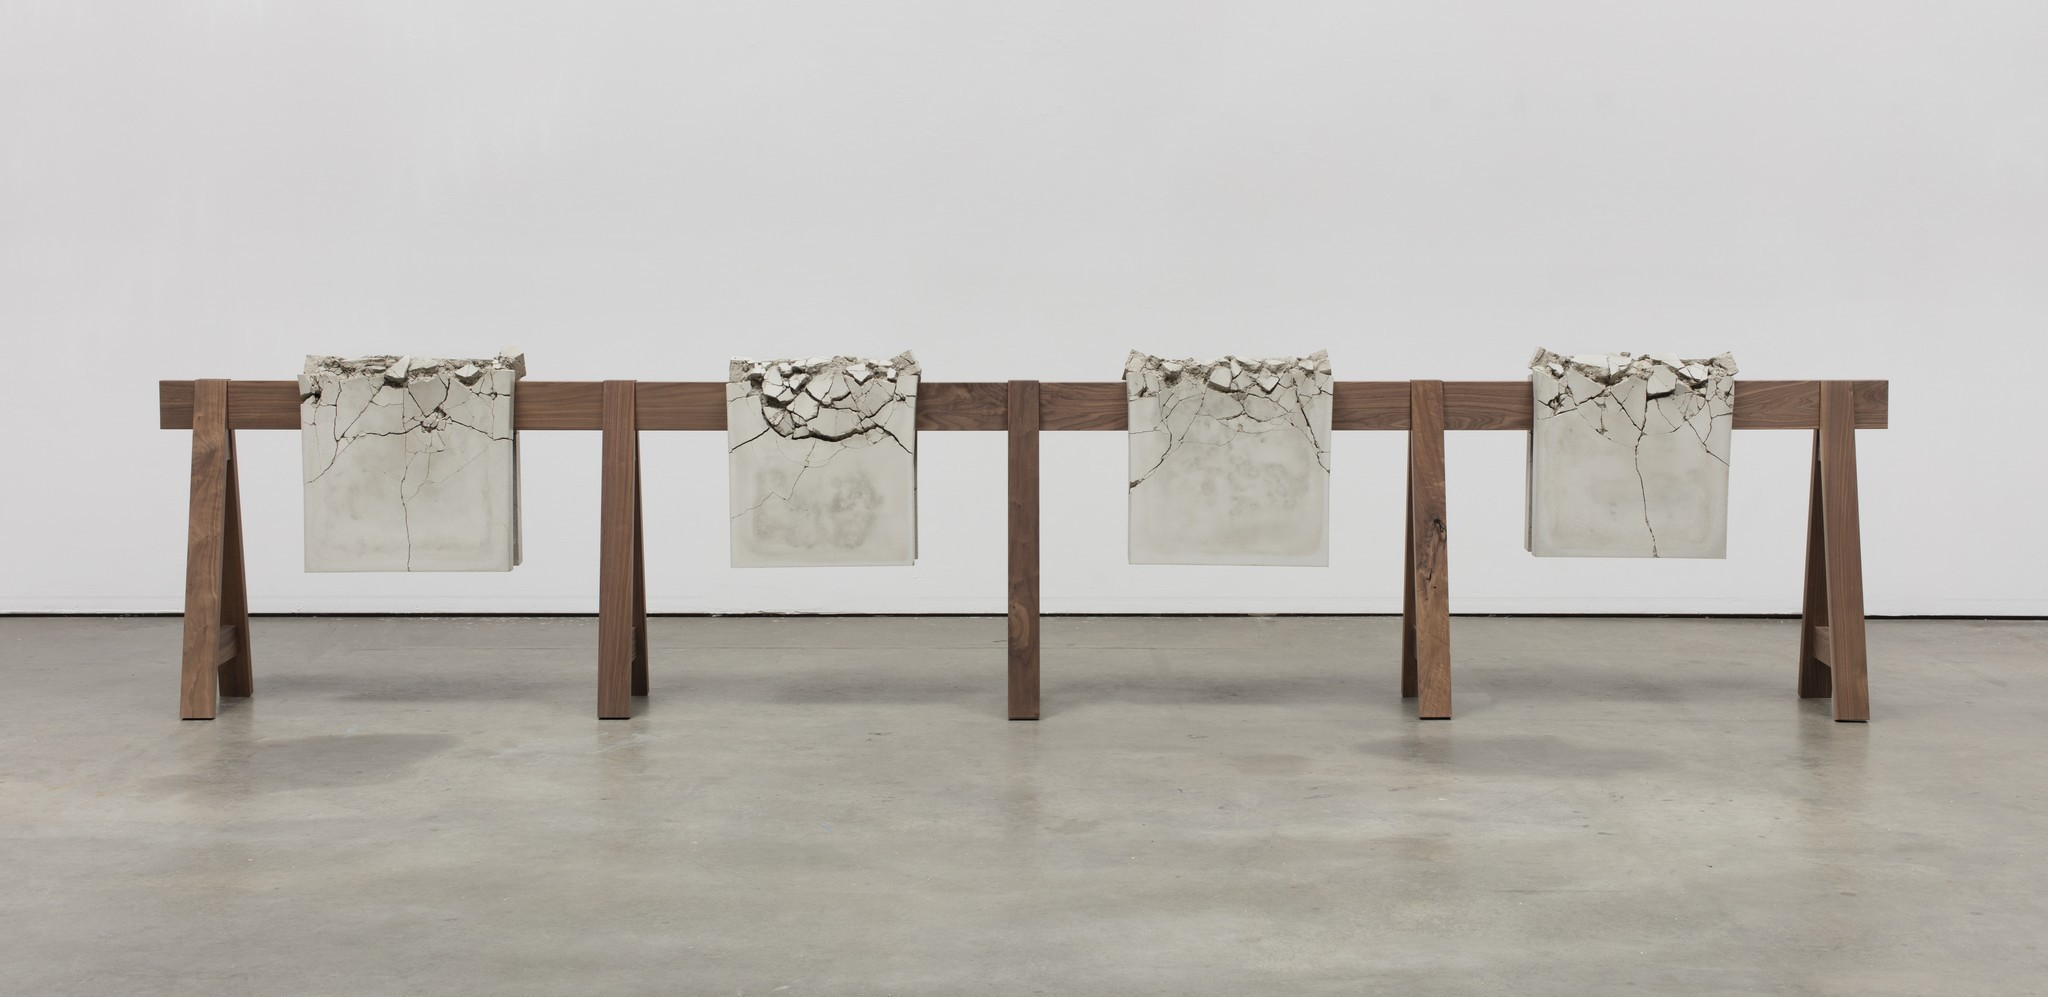 "Analia Saban's ""Draped Concrete (26.25 sq ft),"" 2016. Four concrete slabs on wooden sawhorse, 41-1/4 inches by 192 inches by 16-7/8 inches."